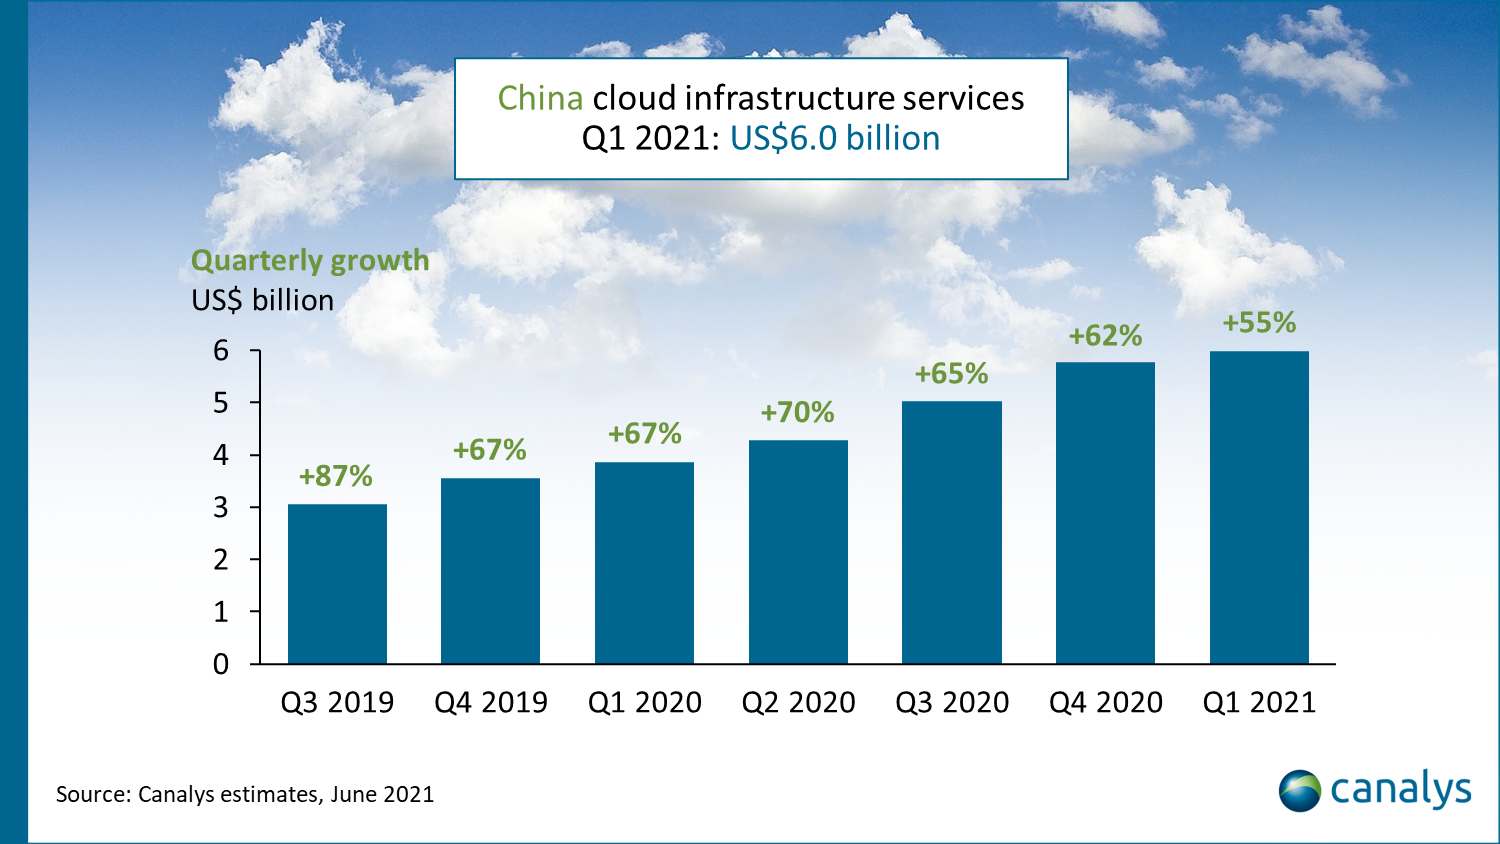 Chine cloud infrastructure services